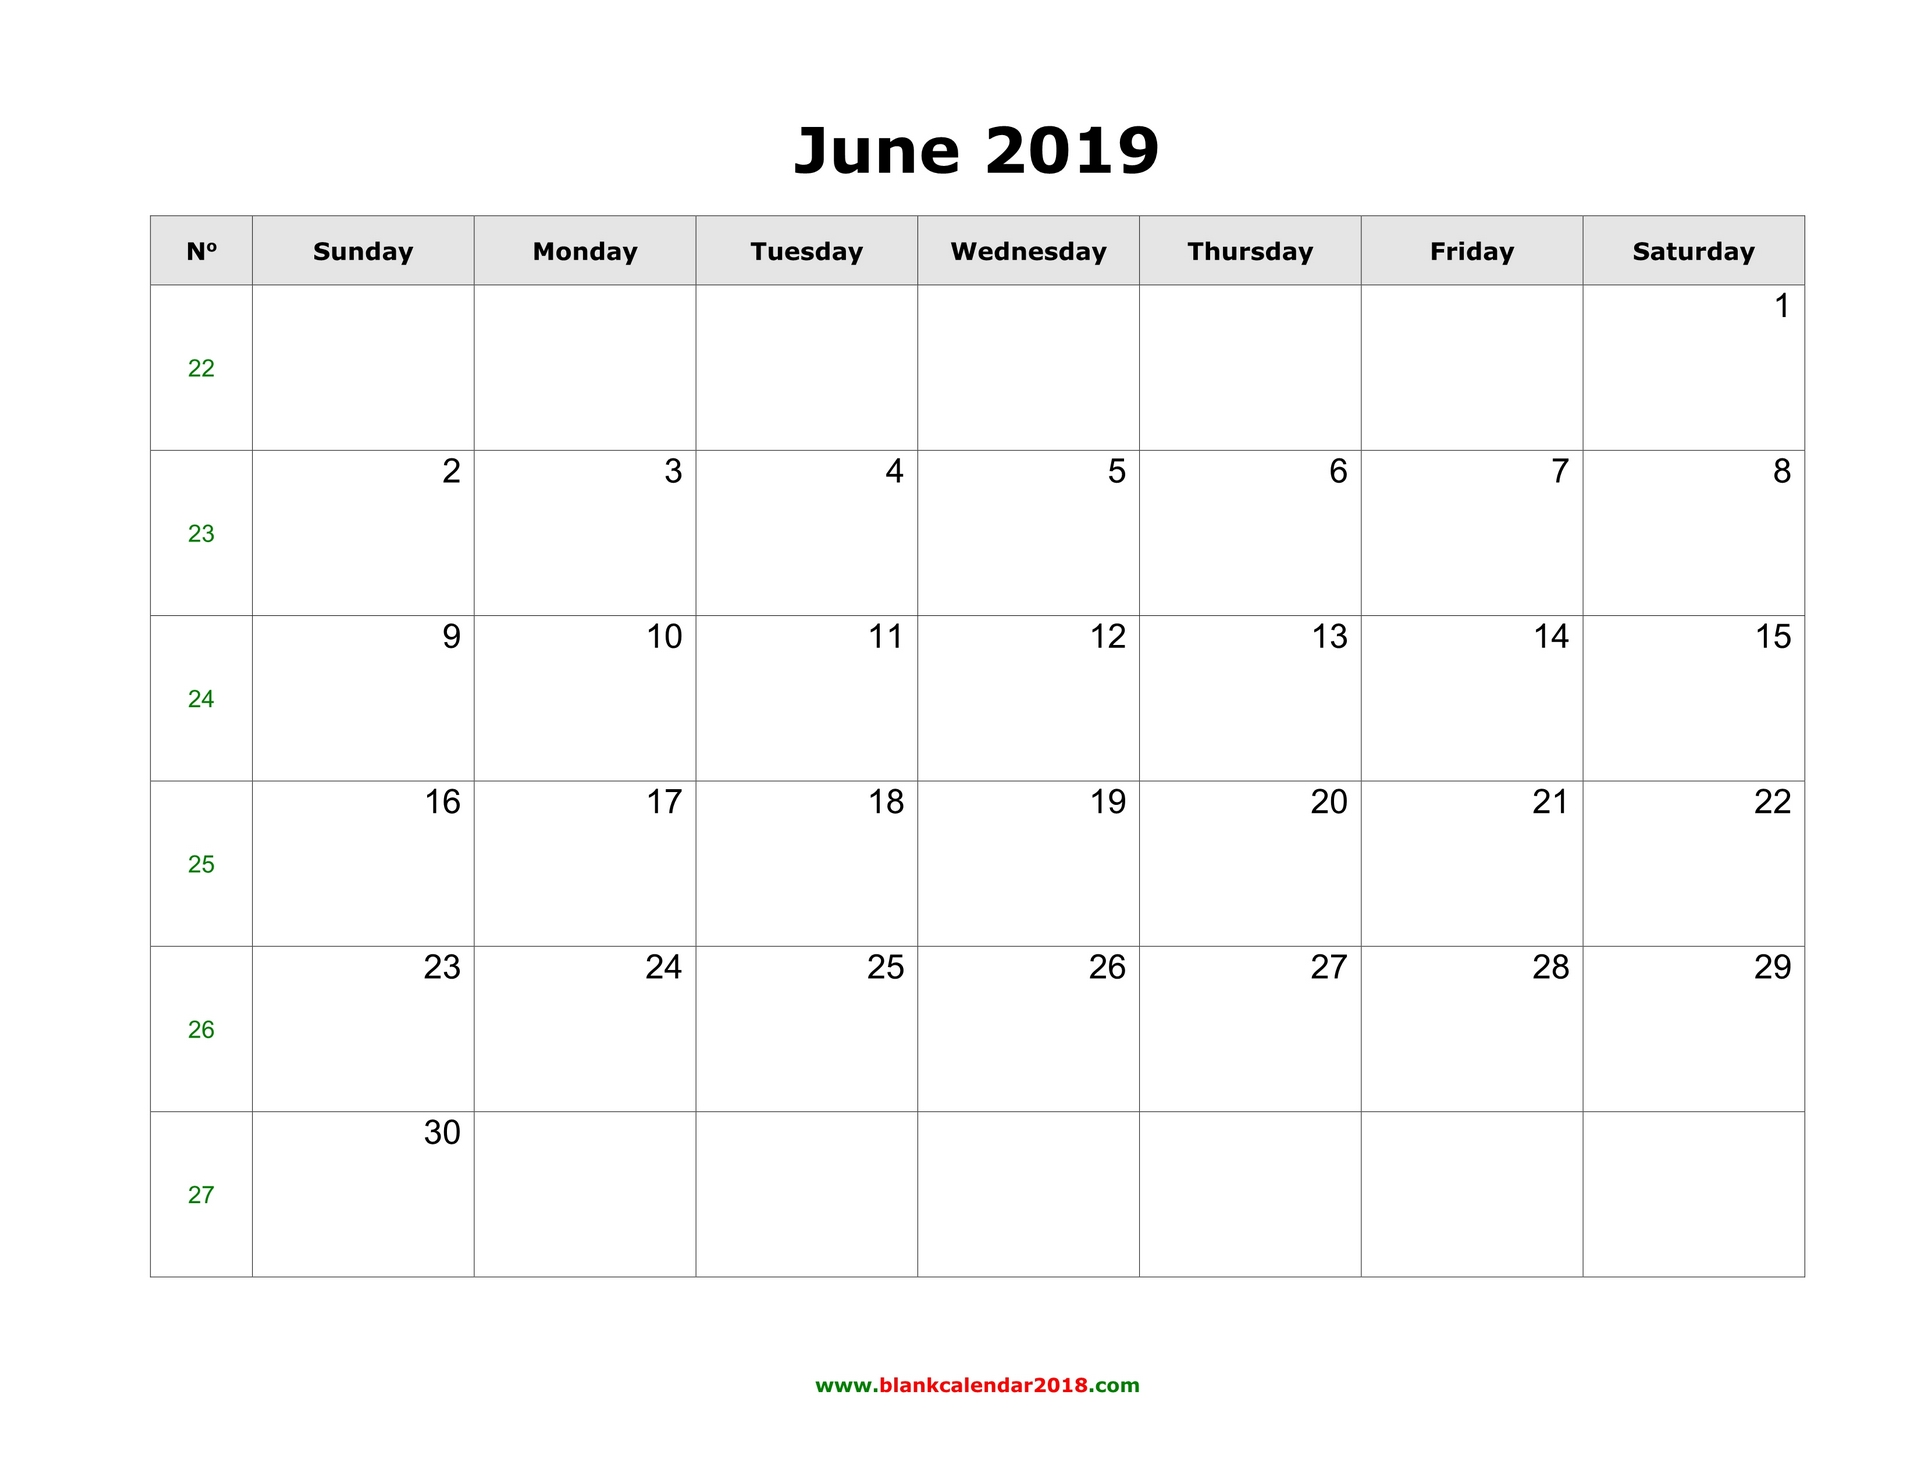 Calendar Sheet January 2019 Blank Calendar for June 2019